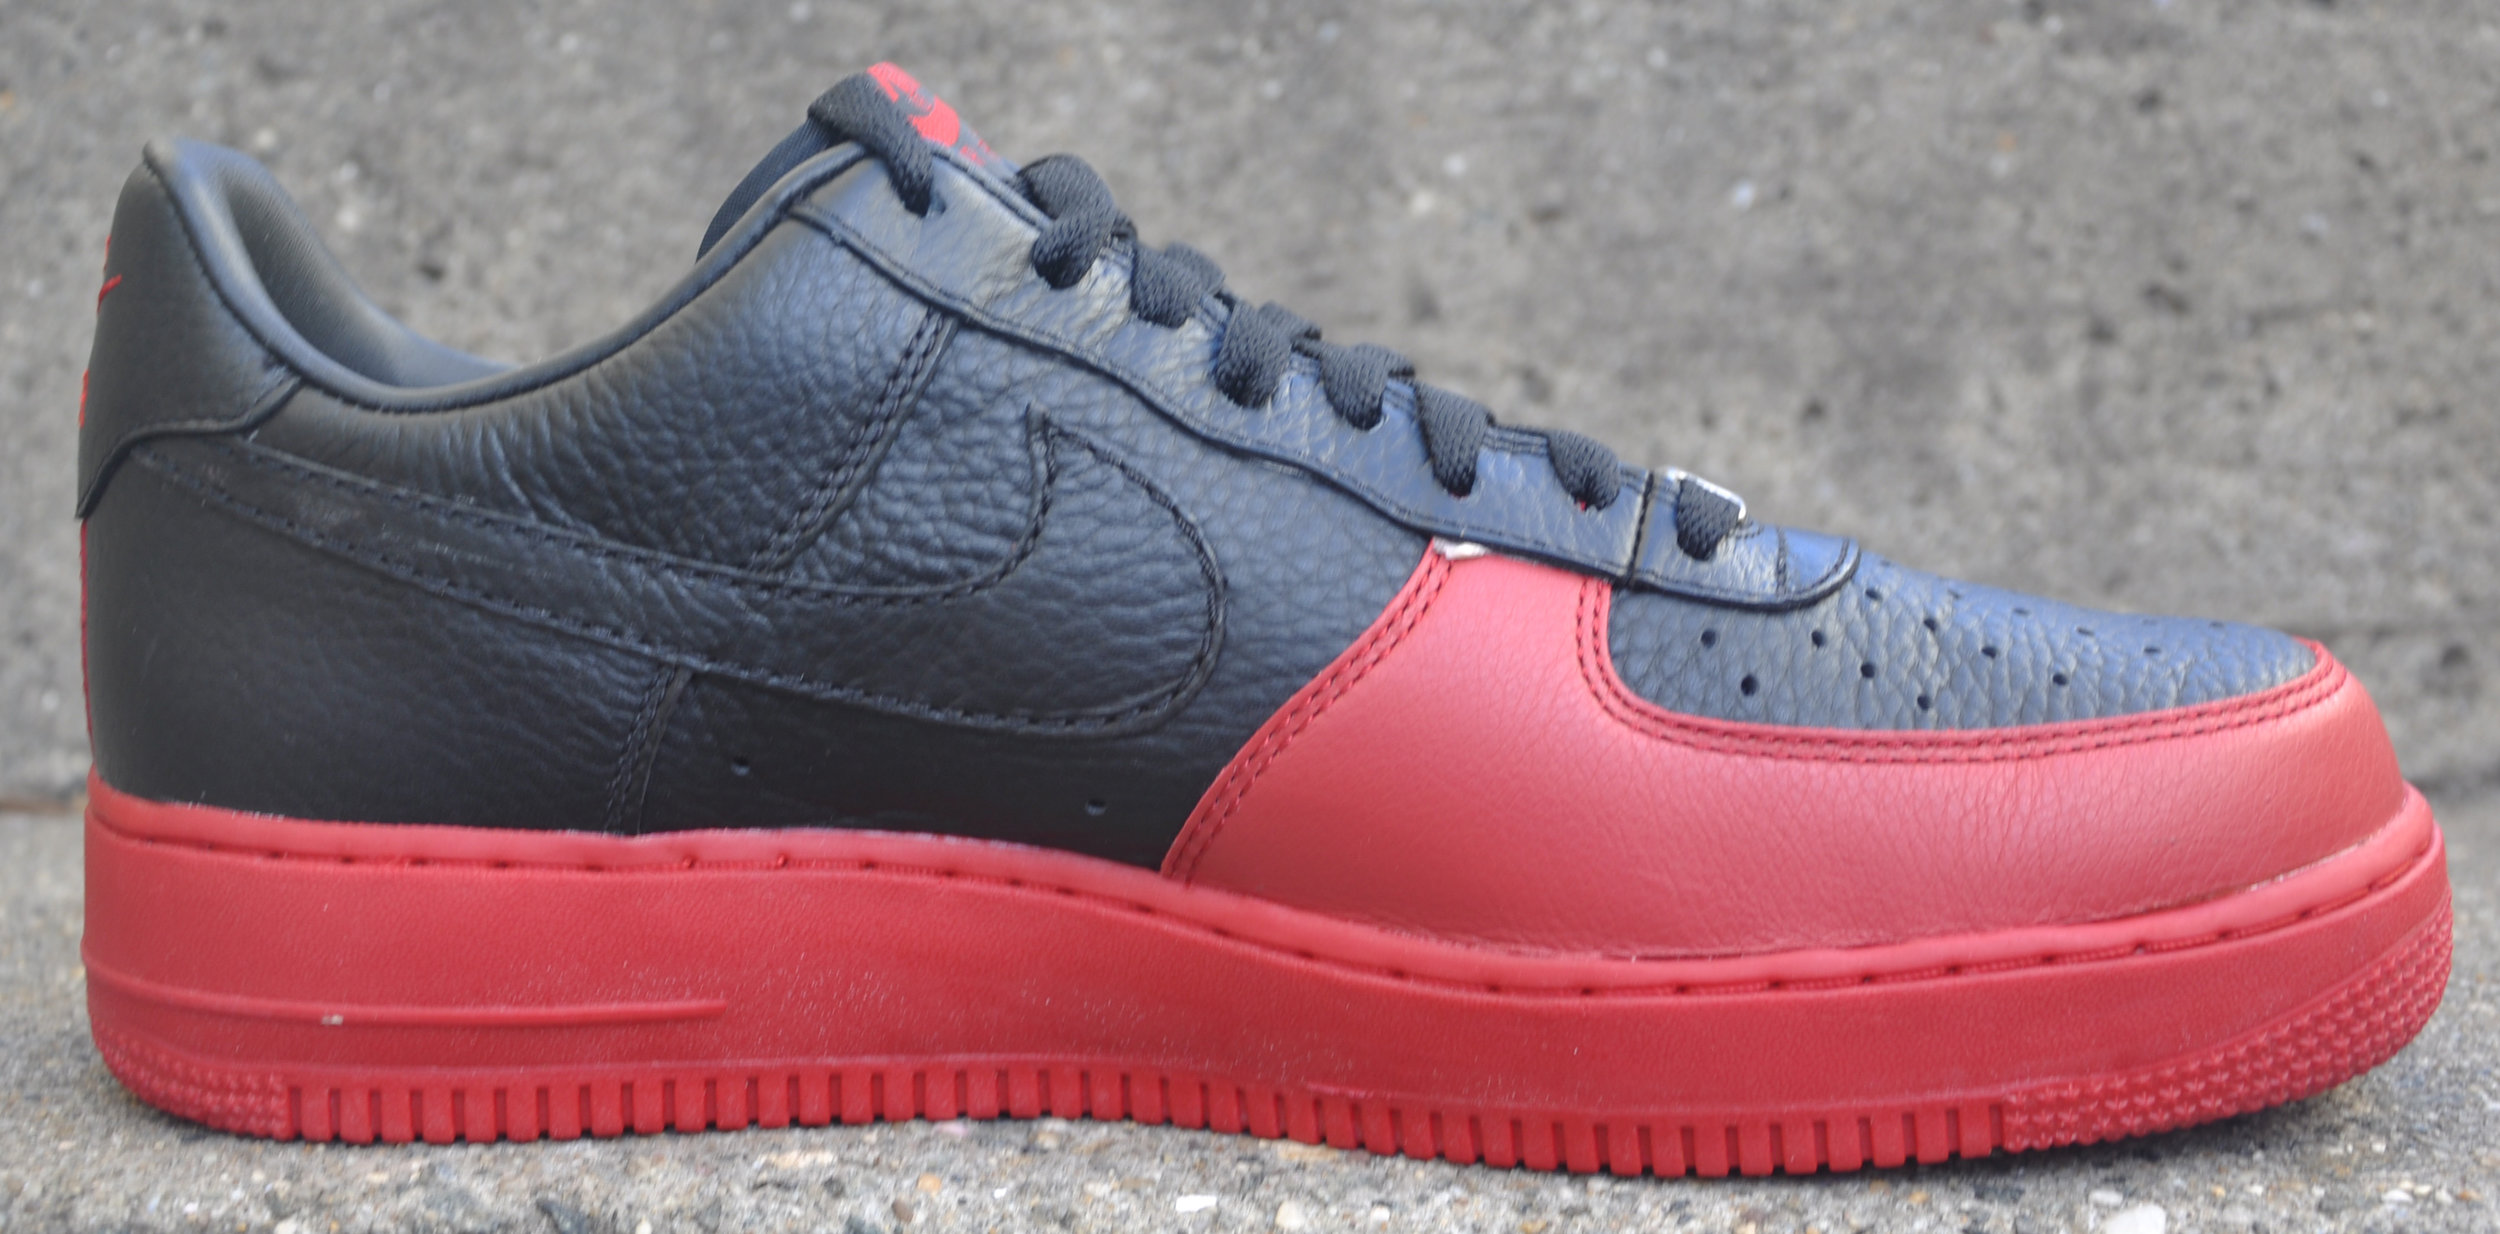 air force 1 size 8.5